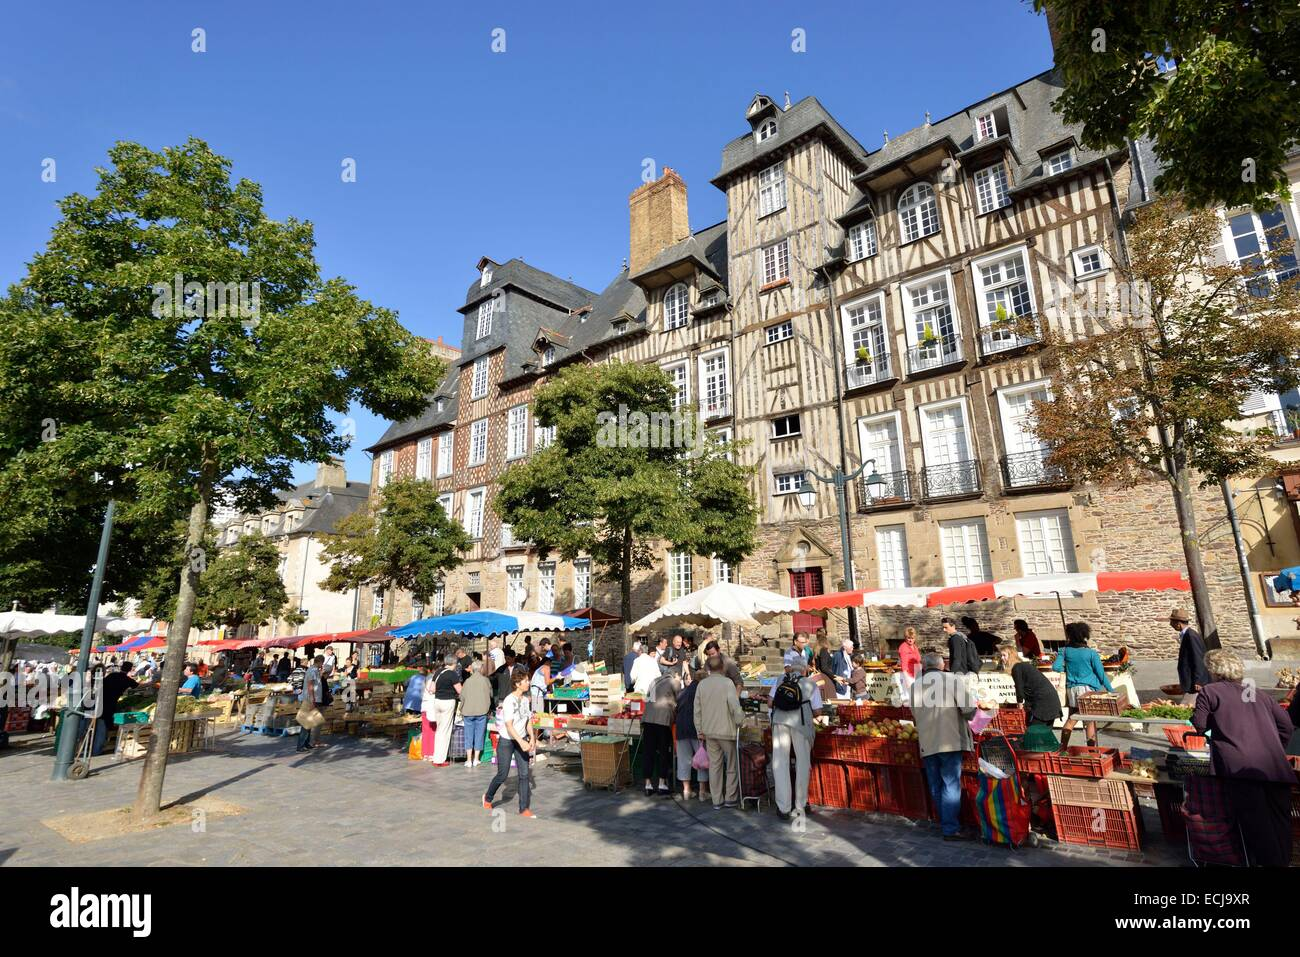 france ille et vilaine rennes place des lices market stock photo royalty free image. Black Bedroom Furniture Sets. Home Design Ideas